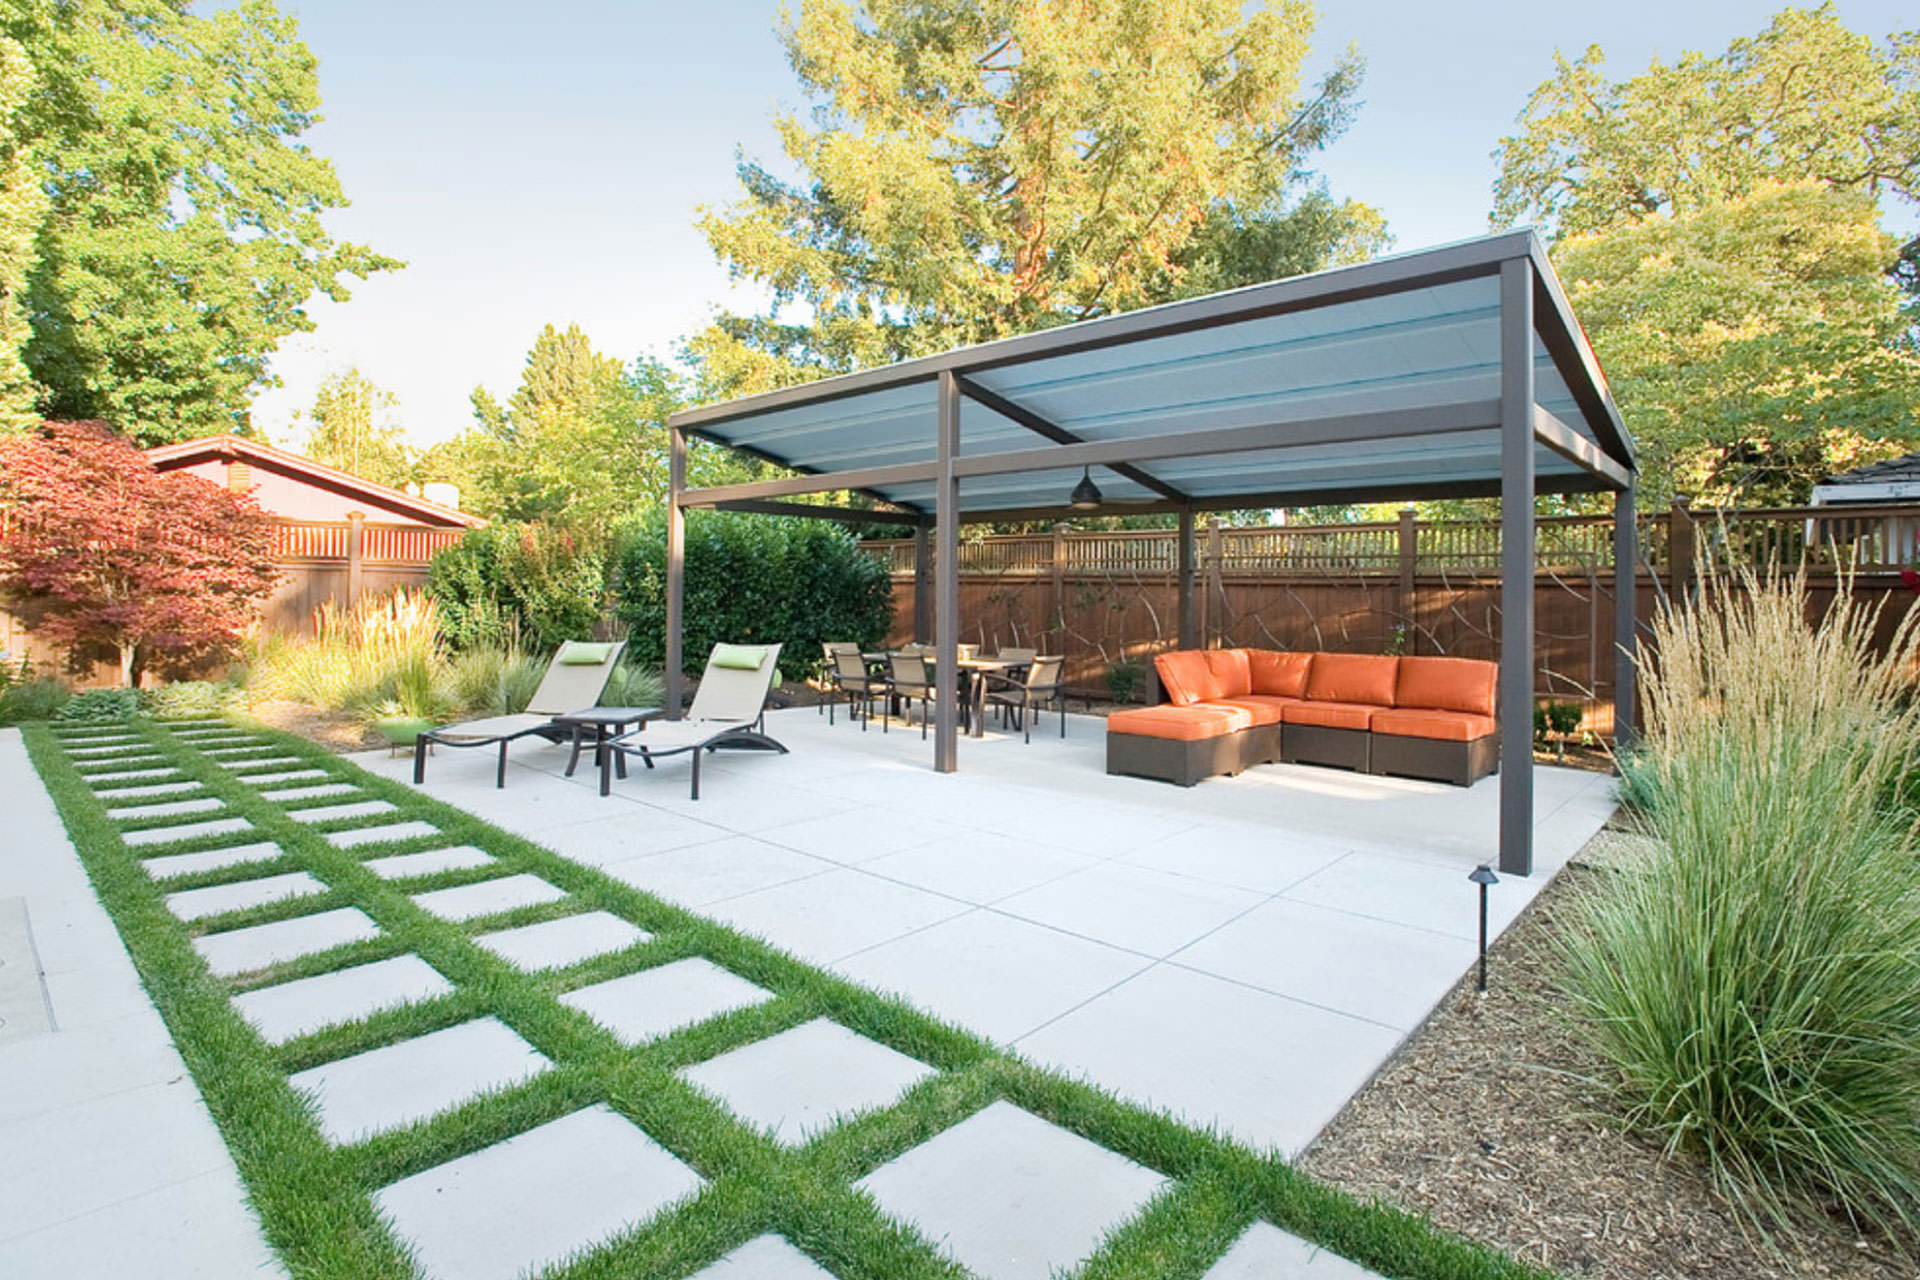 the pergola roof guide. Black Bedroom Furniture Sets. Home Design Ideas